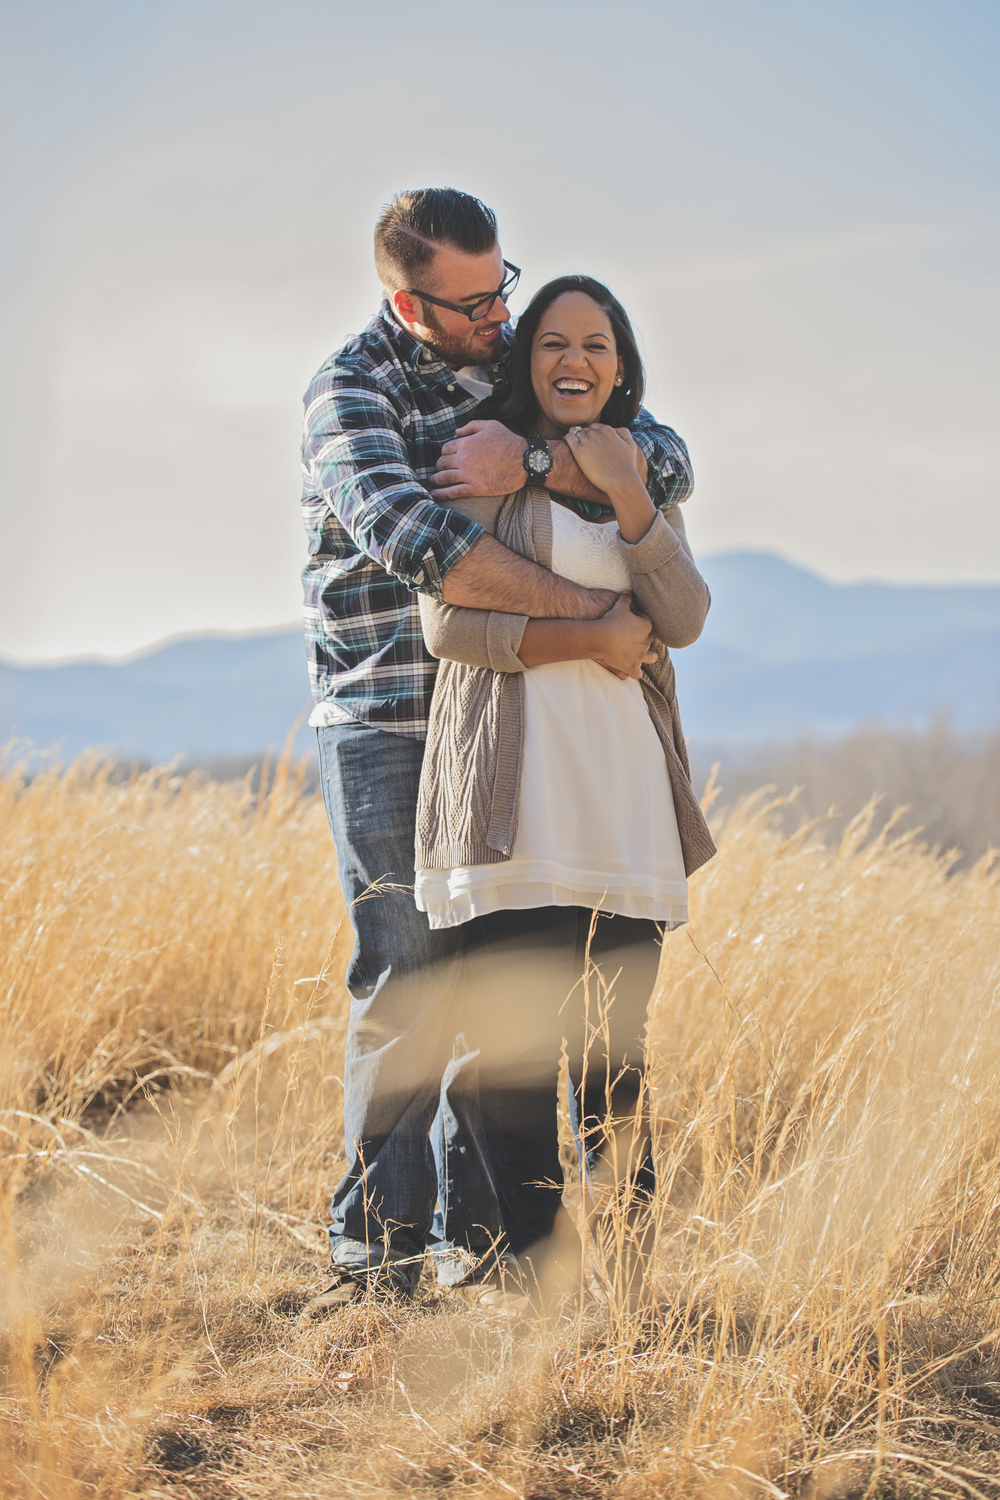 cabin_mountains_romantic_field_engagement_session_lynchburg_va017.jpg